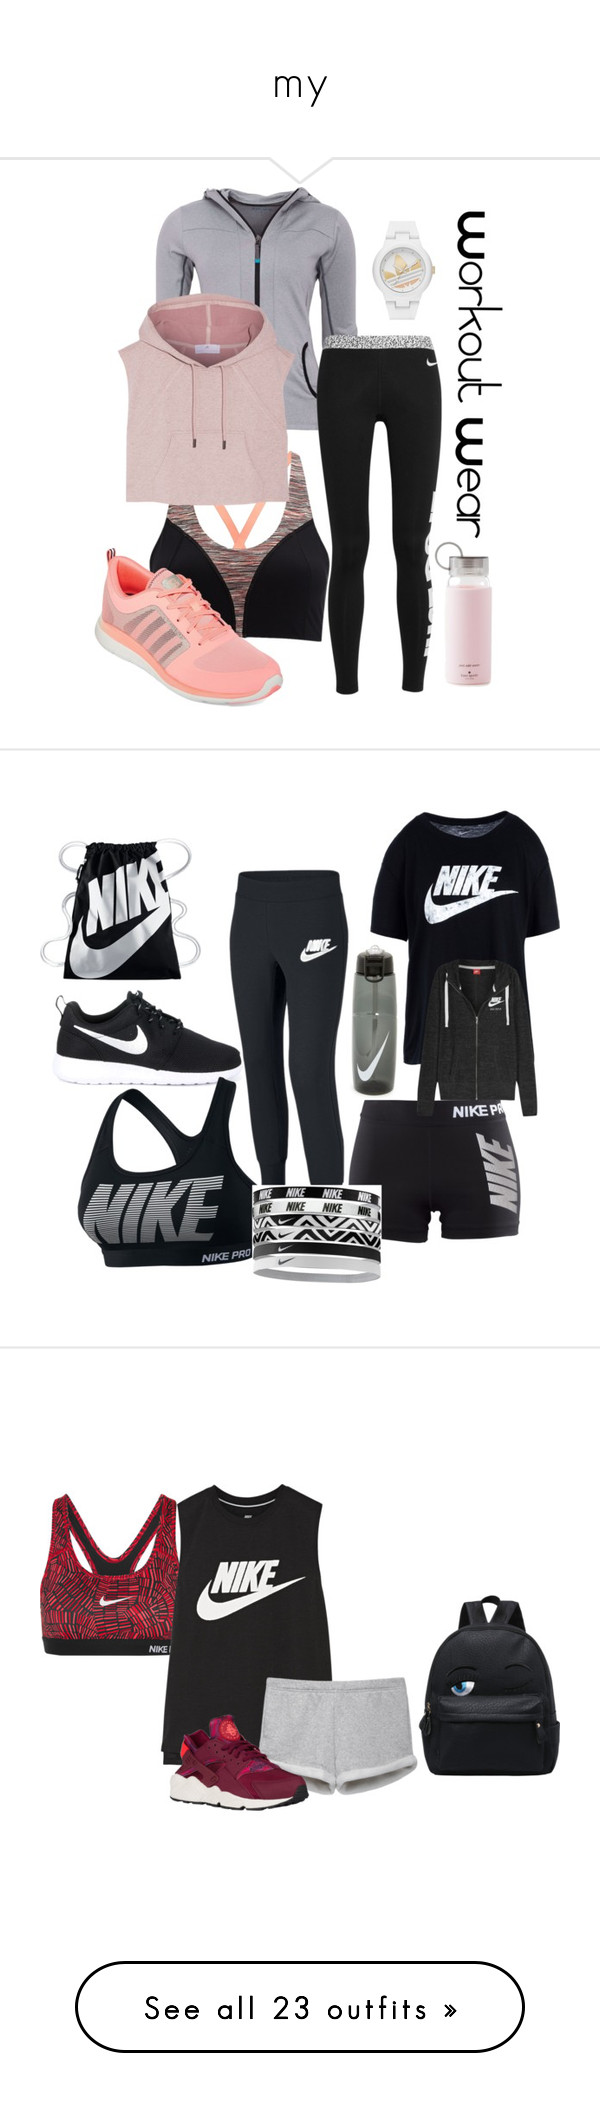 """my"" by stegmillerh ❤ liked on Polyvore featuring activewear, activewear tops, nike, sports, sportswear, workout, sport jerseys, nike activewear, racerback jersey and nike sportswear"